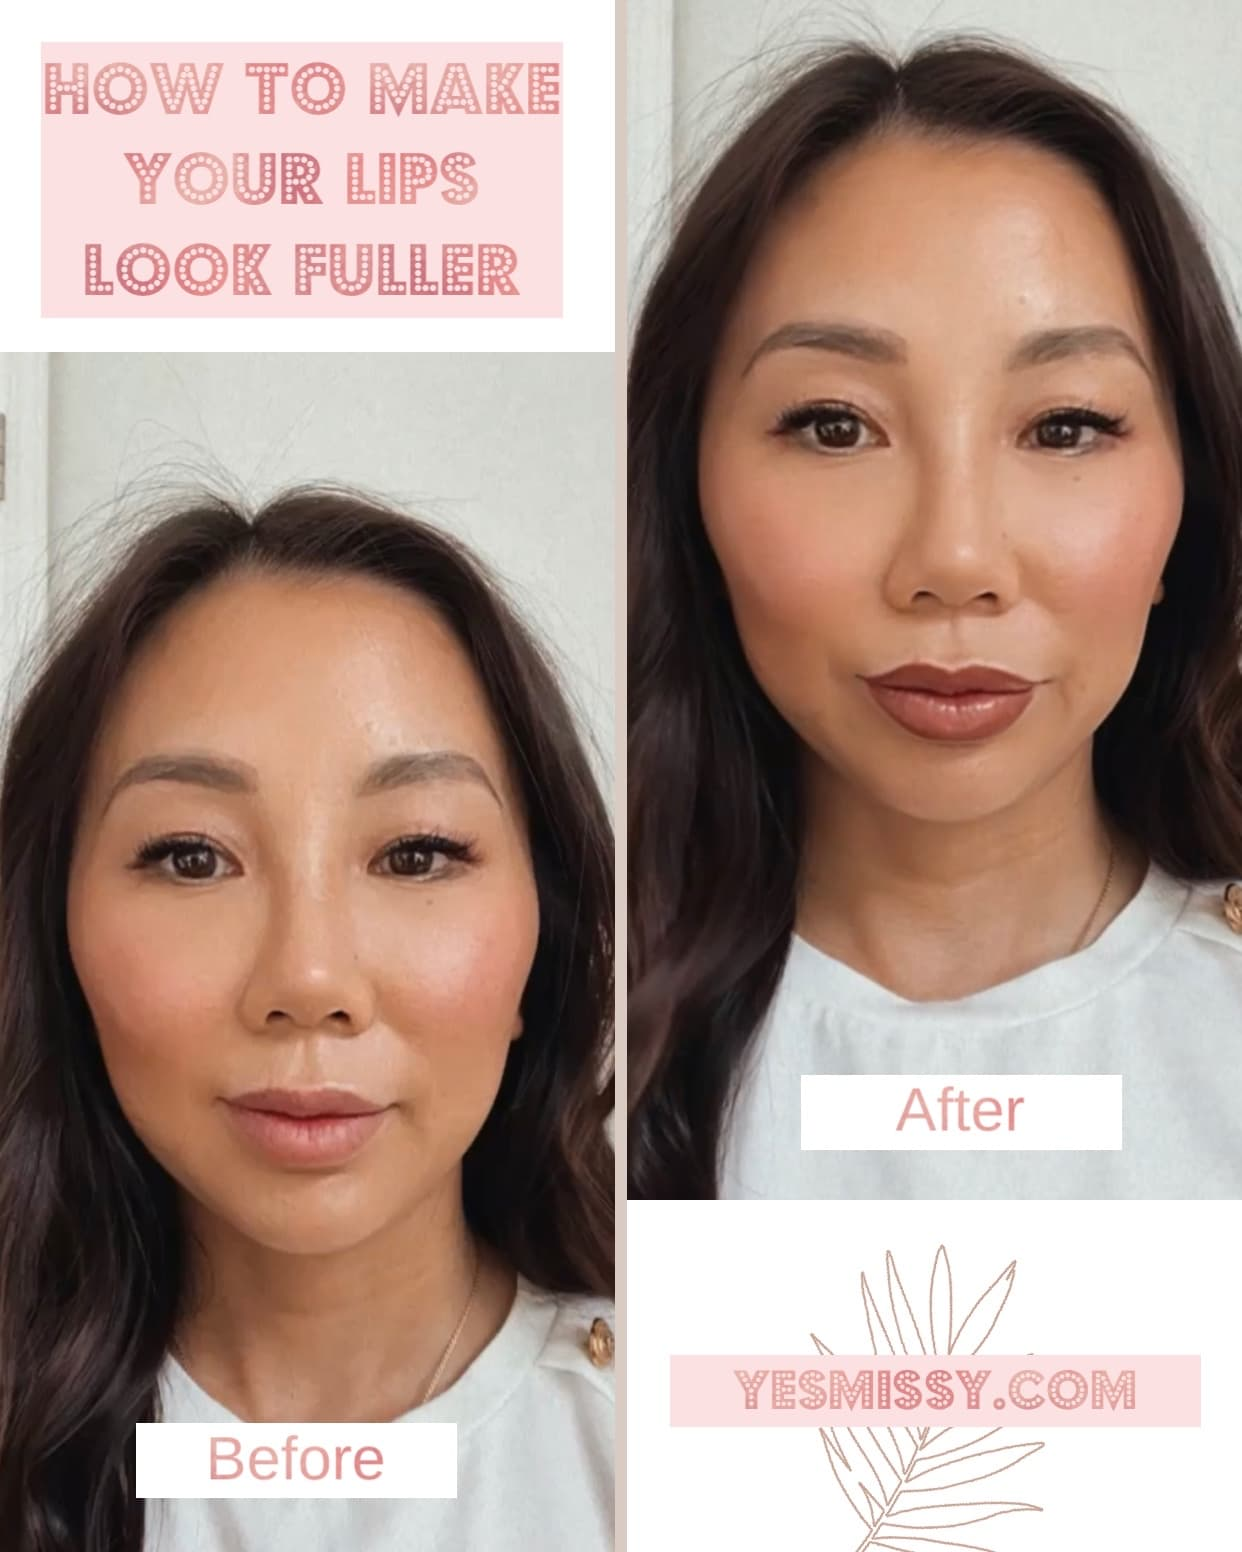 Before and after - How to get fuller lips with this easy makeup trick. Learn more at yesmissy.com